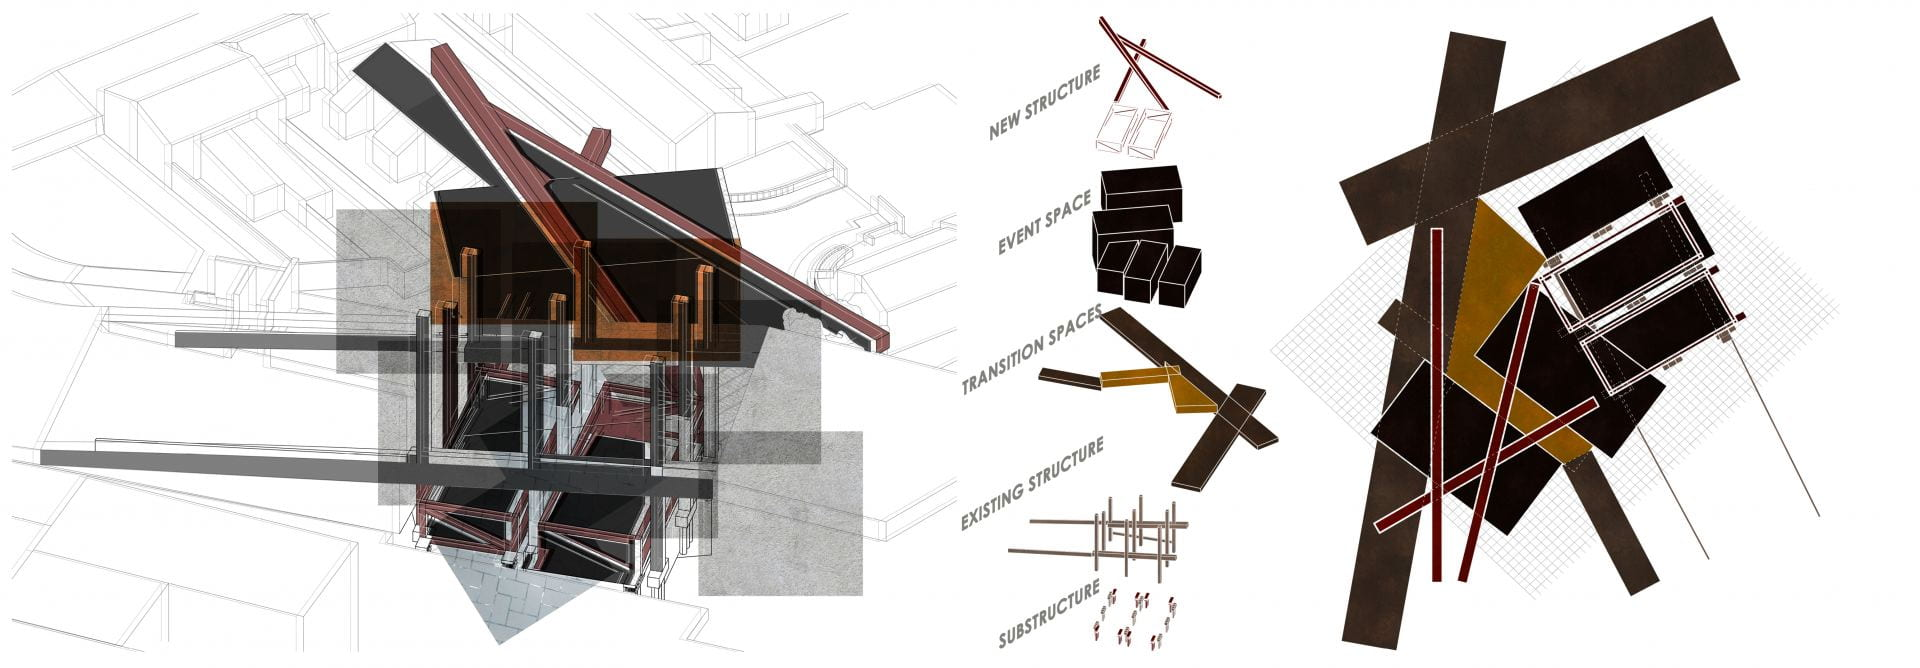 Breakdown of Site Architectonics showing the intended structures